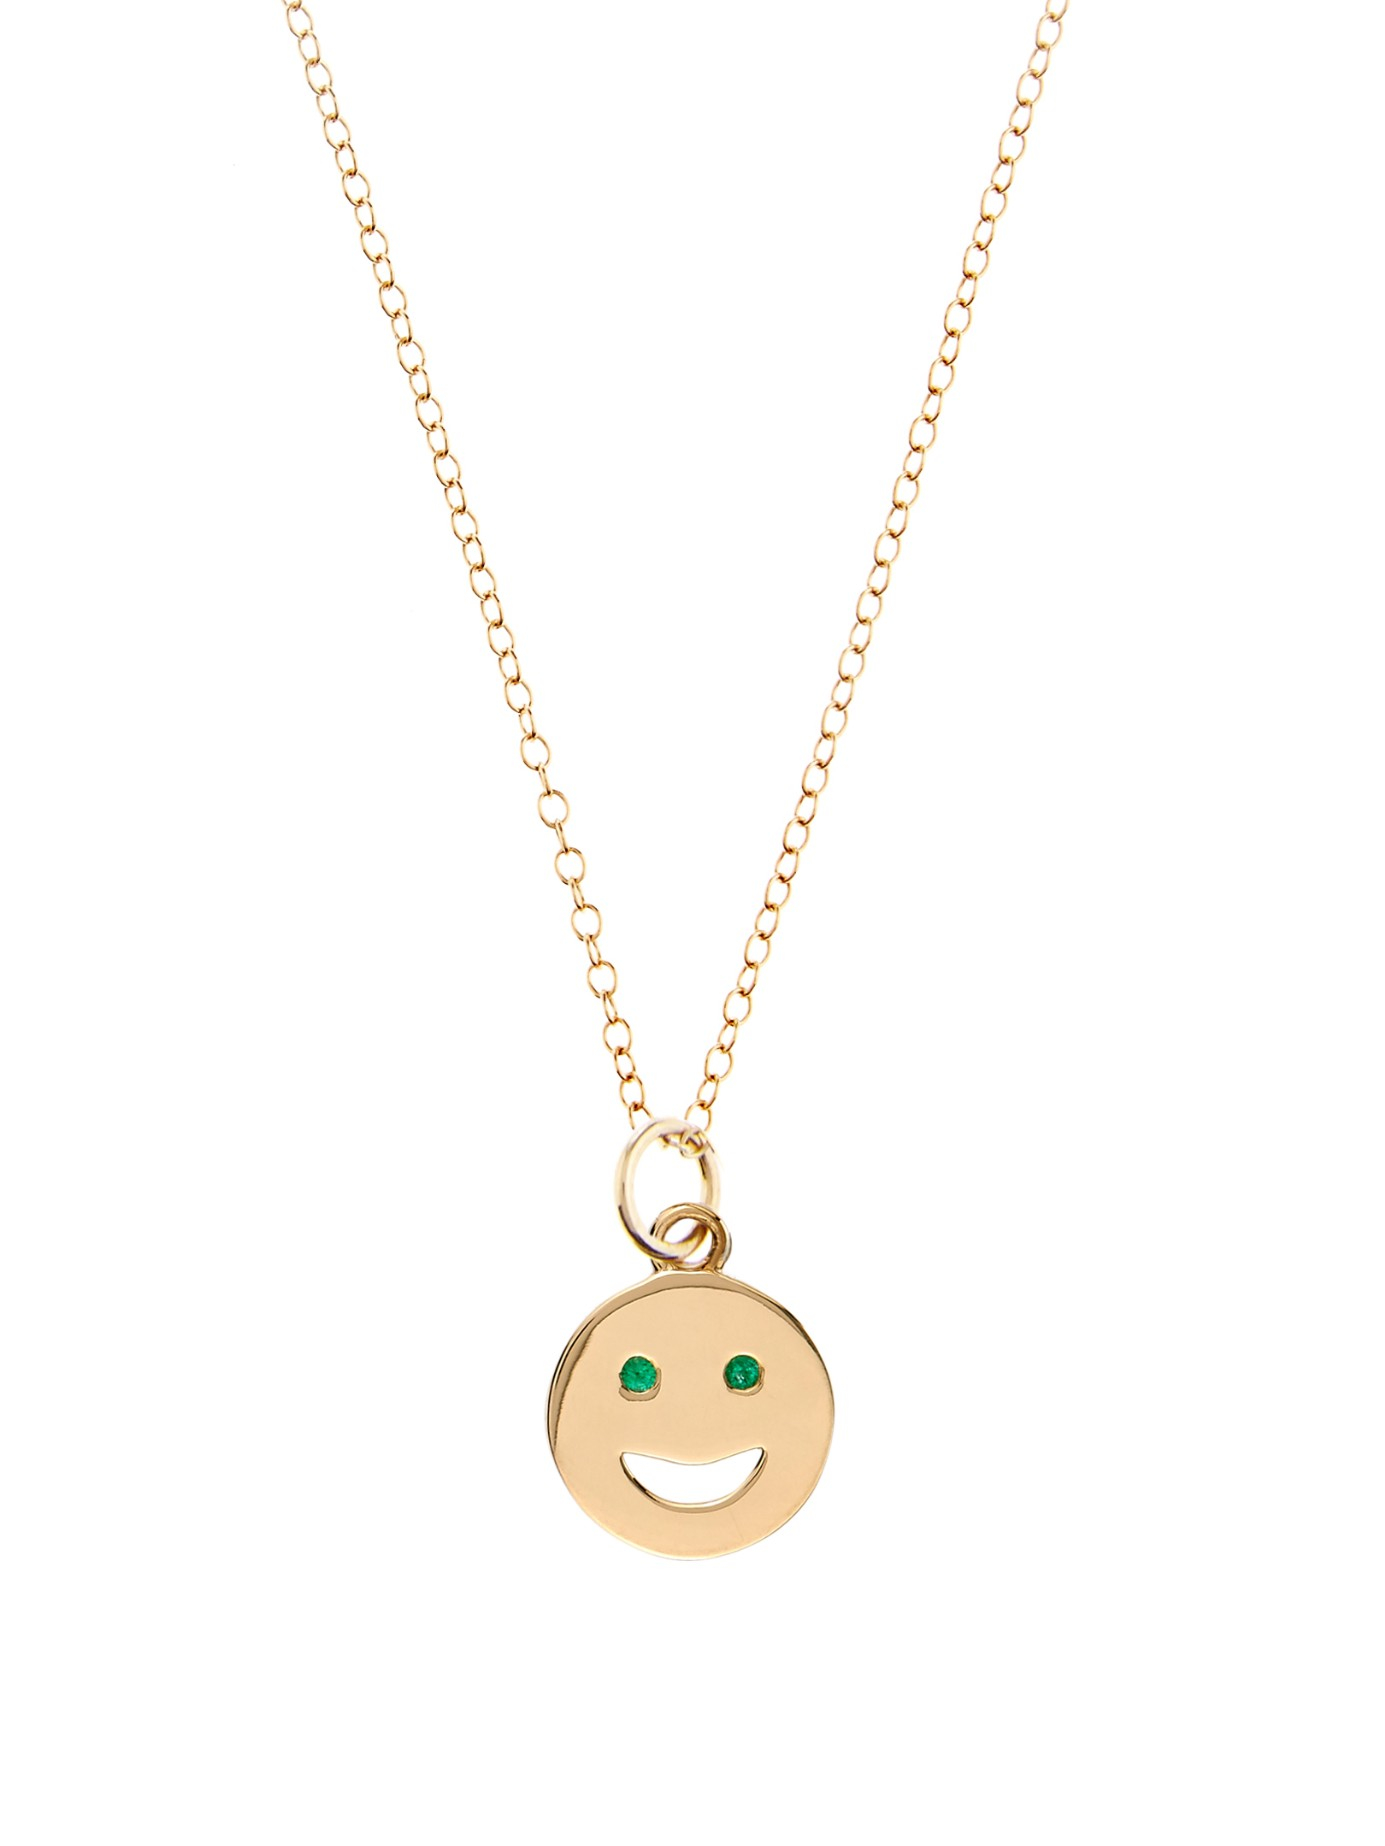 alison lou emerald yellow gold happy necklace in